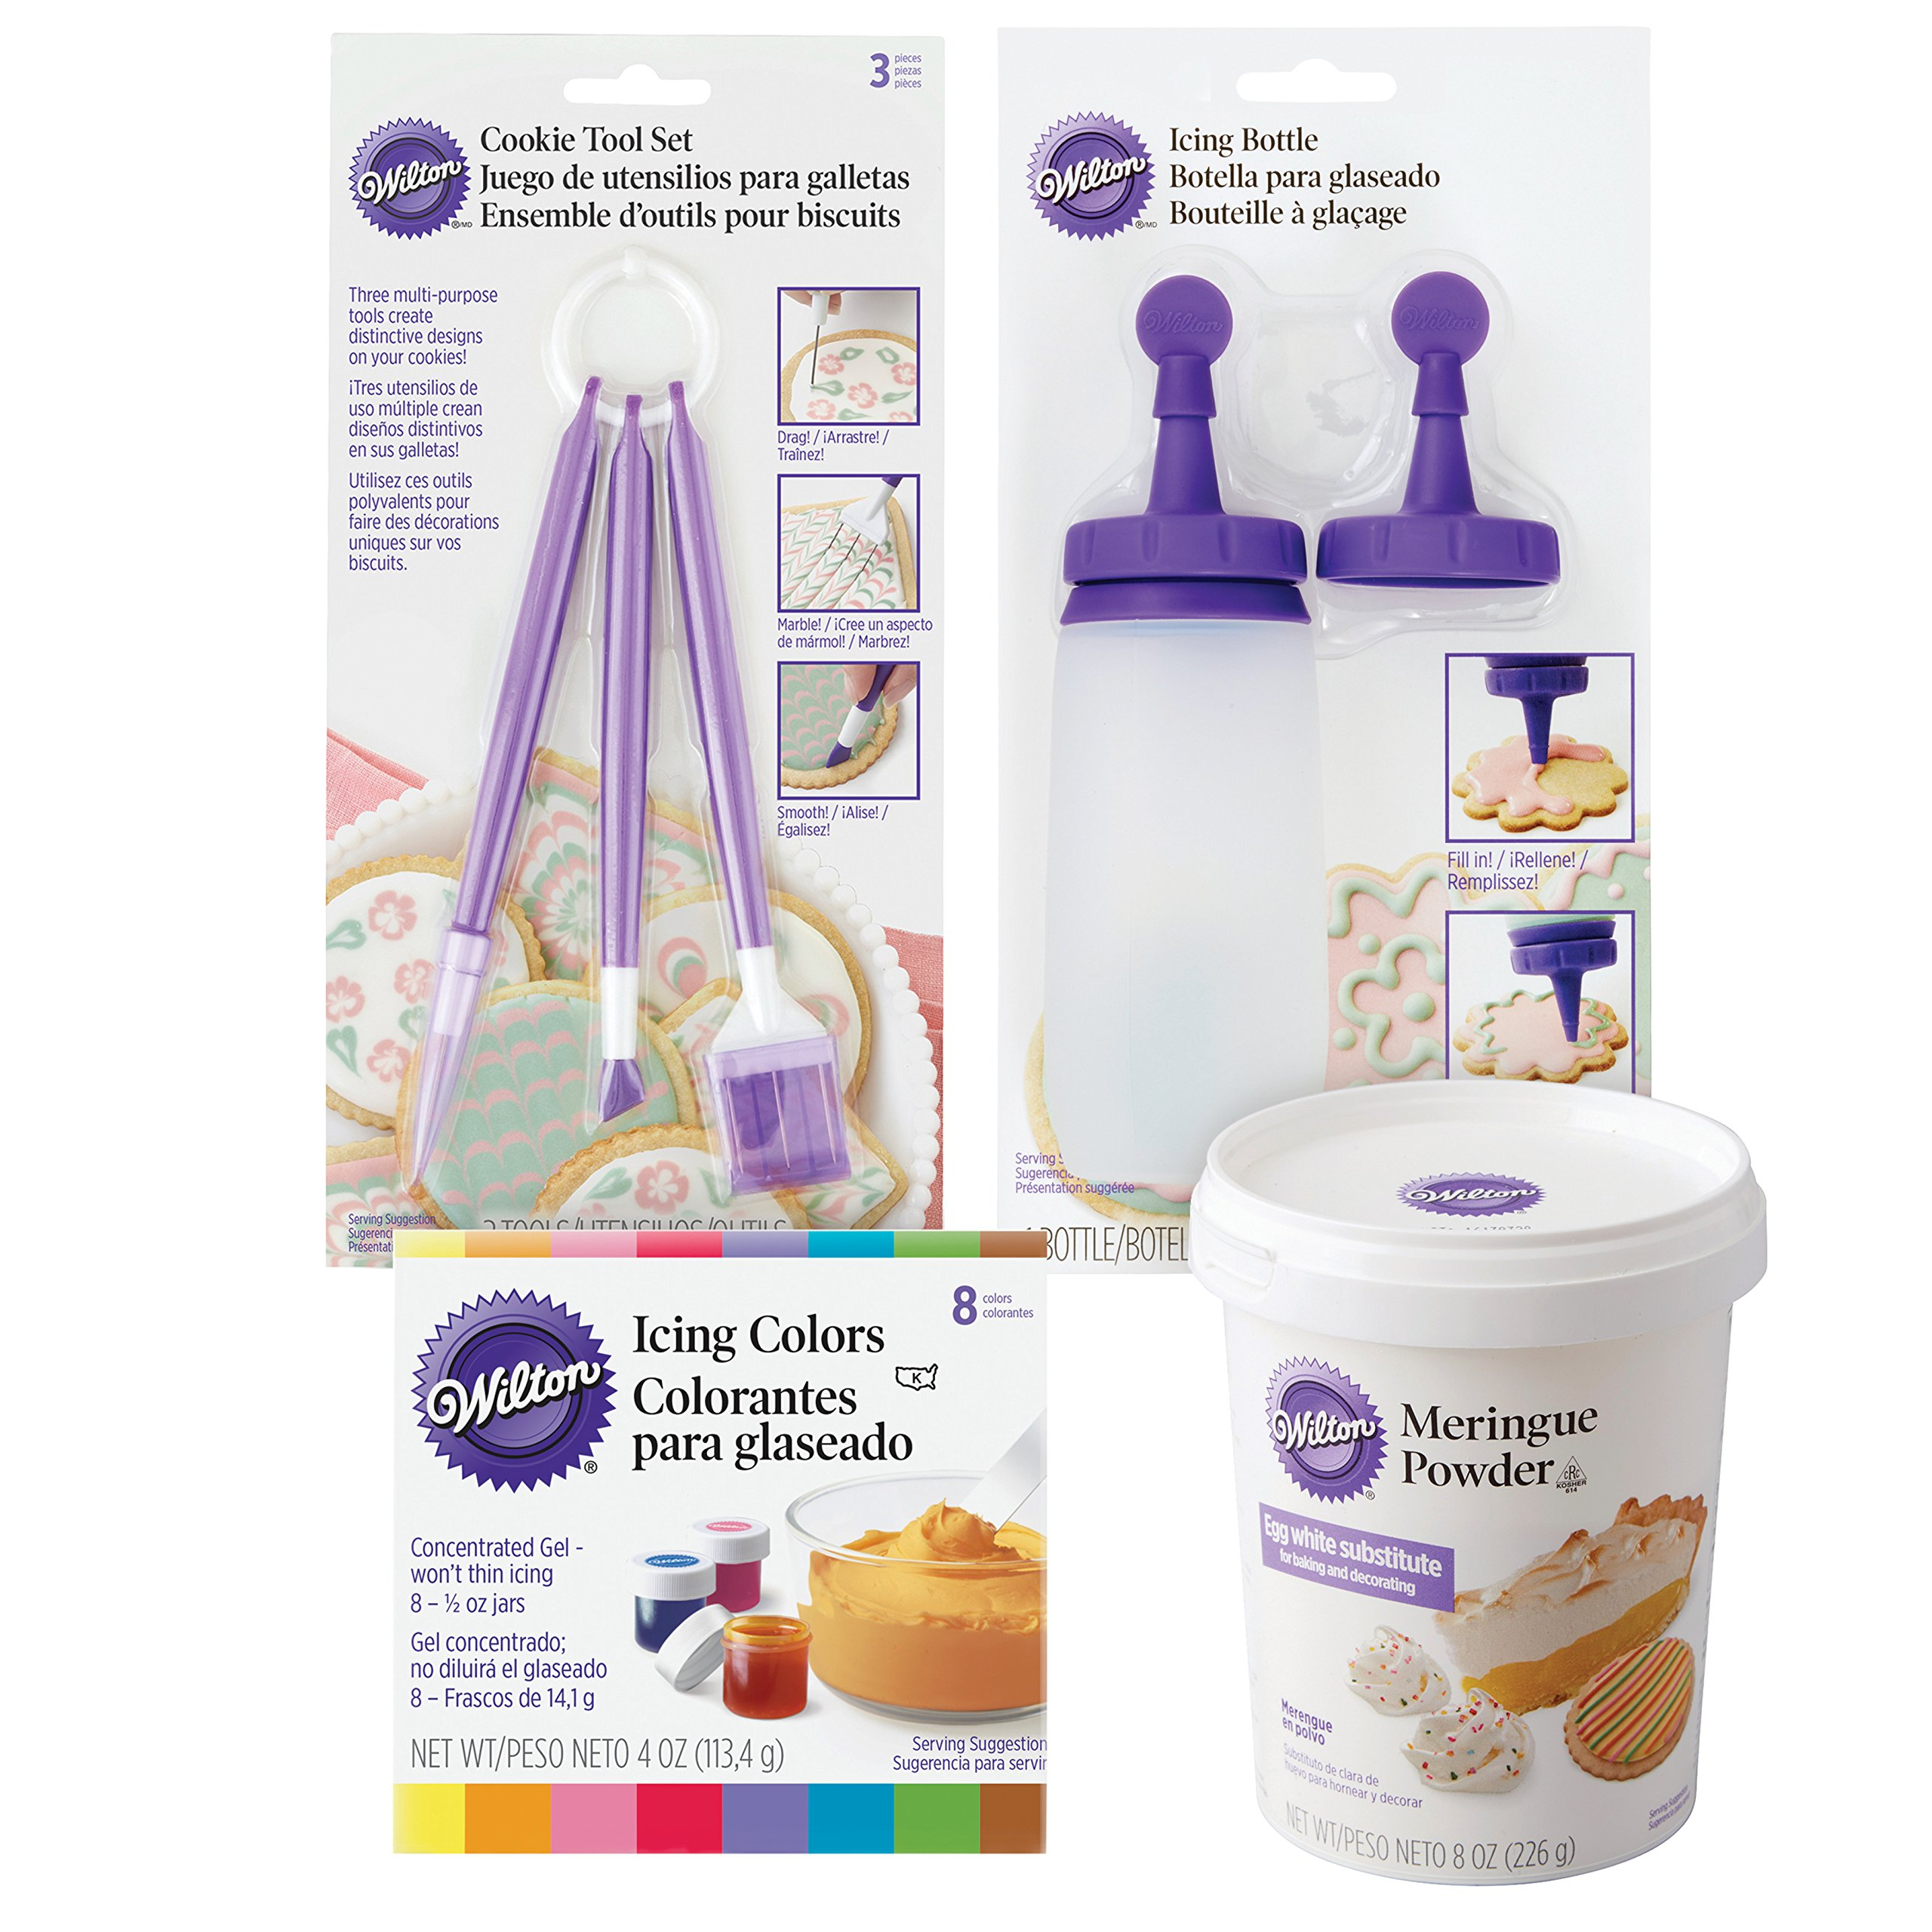 Wilton Sugar Cookie Decorating Kit, 15-Piece - Tool Set, Meringue Powder, Icing Colors, and Decorating Bottle by Wilton